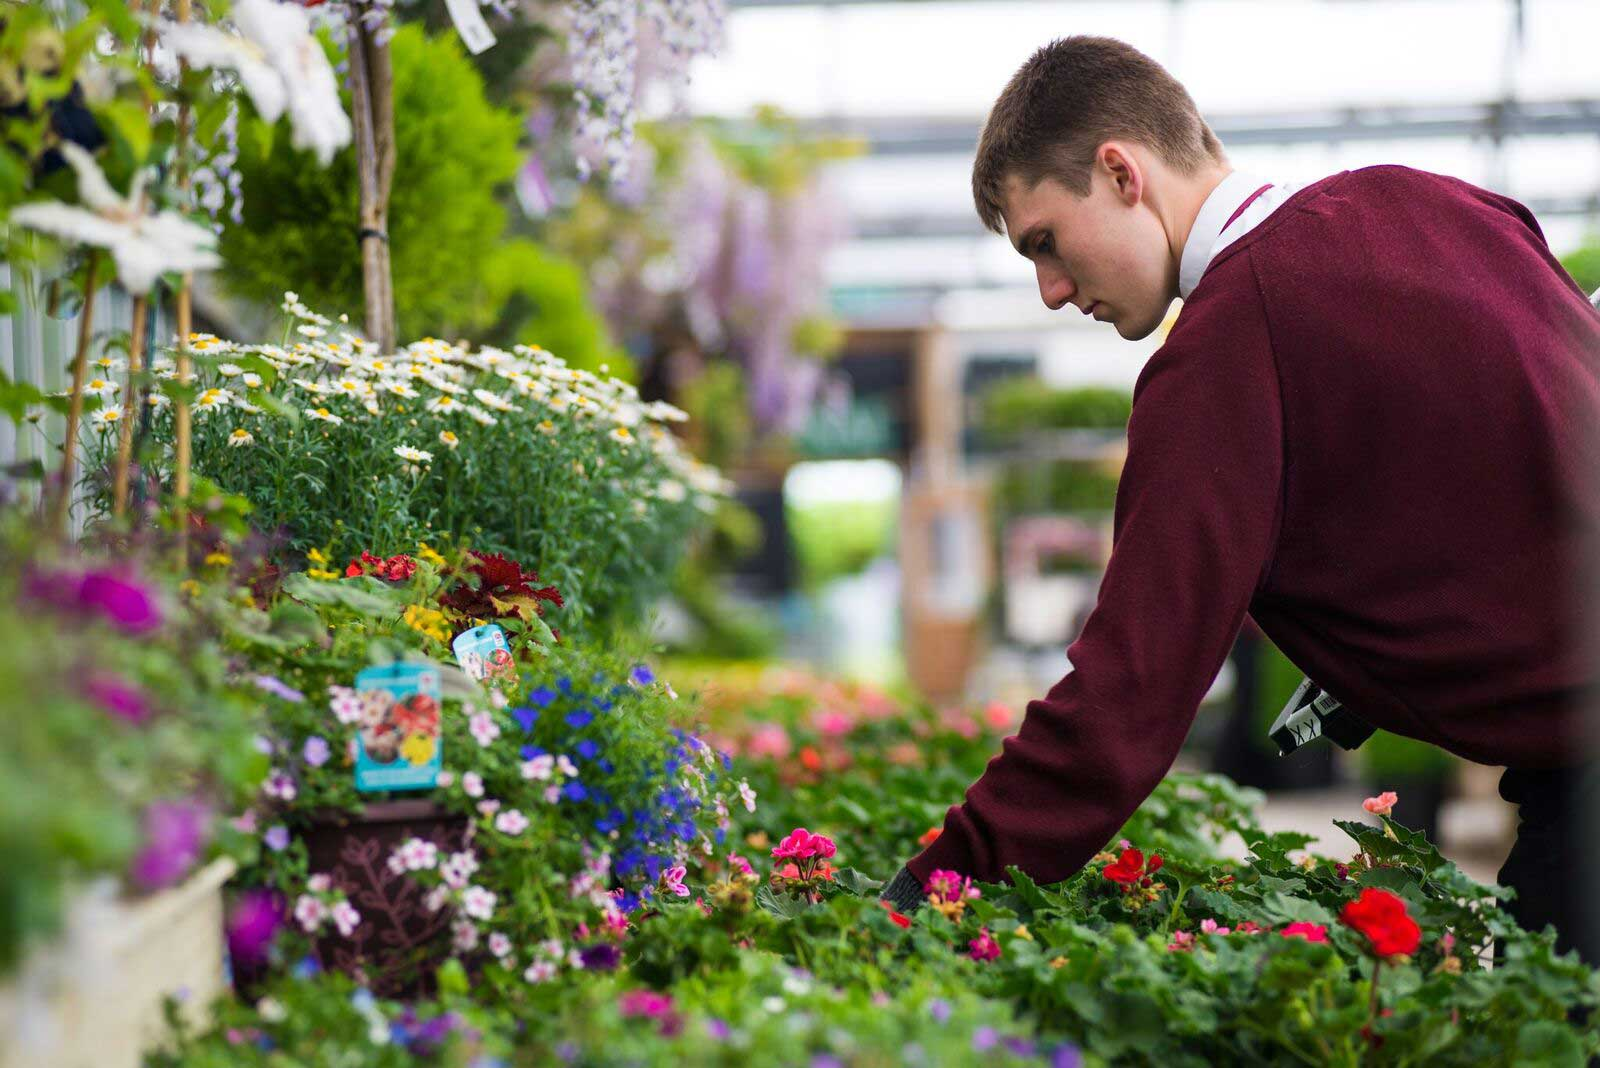 A young man in uniform inspects plants in a display